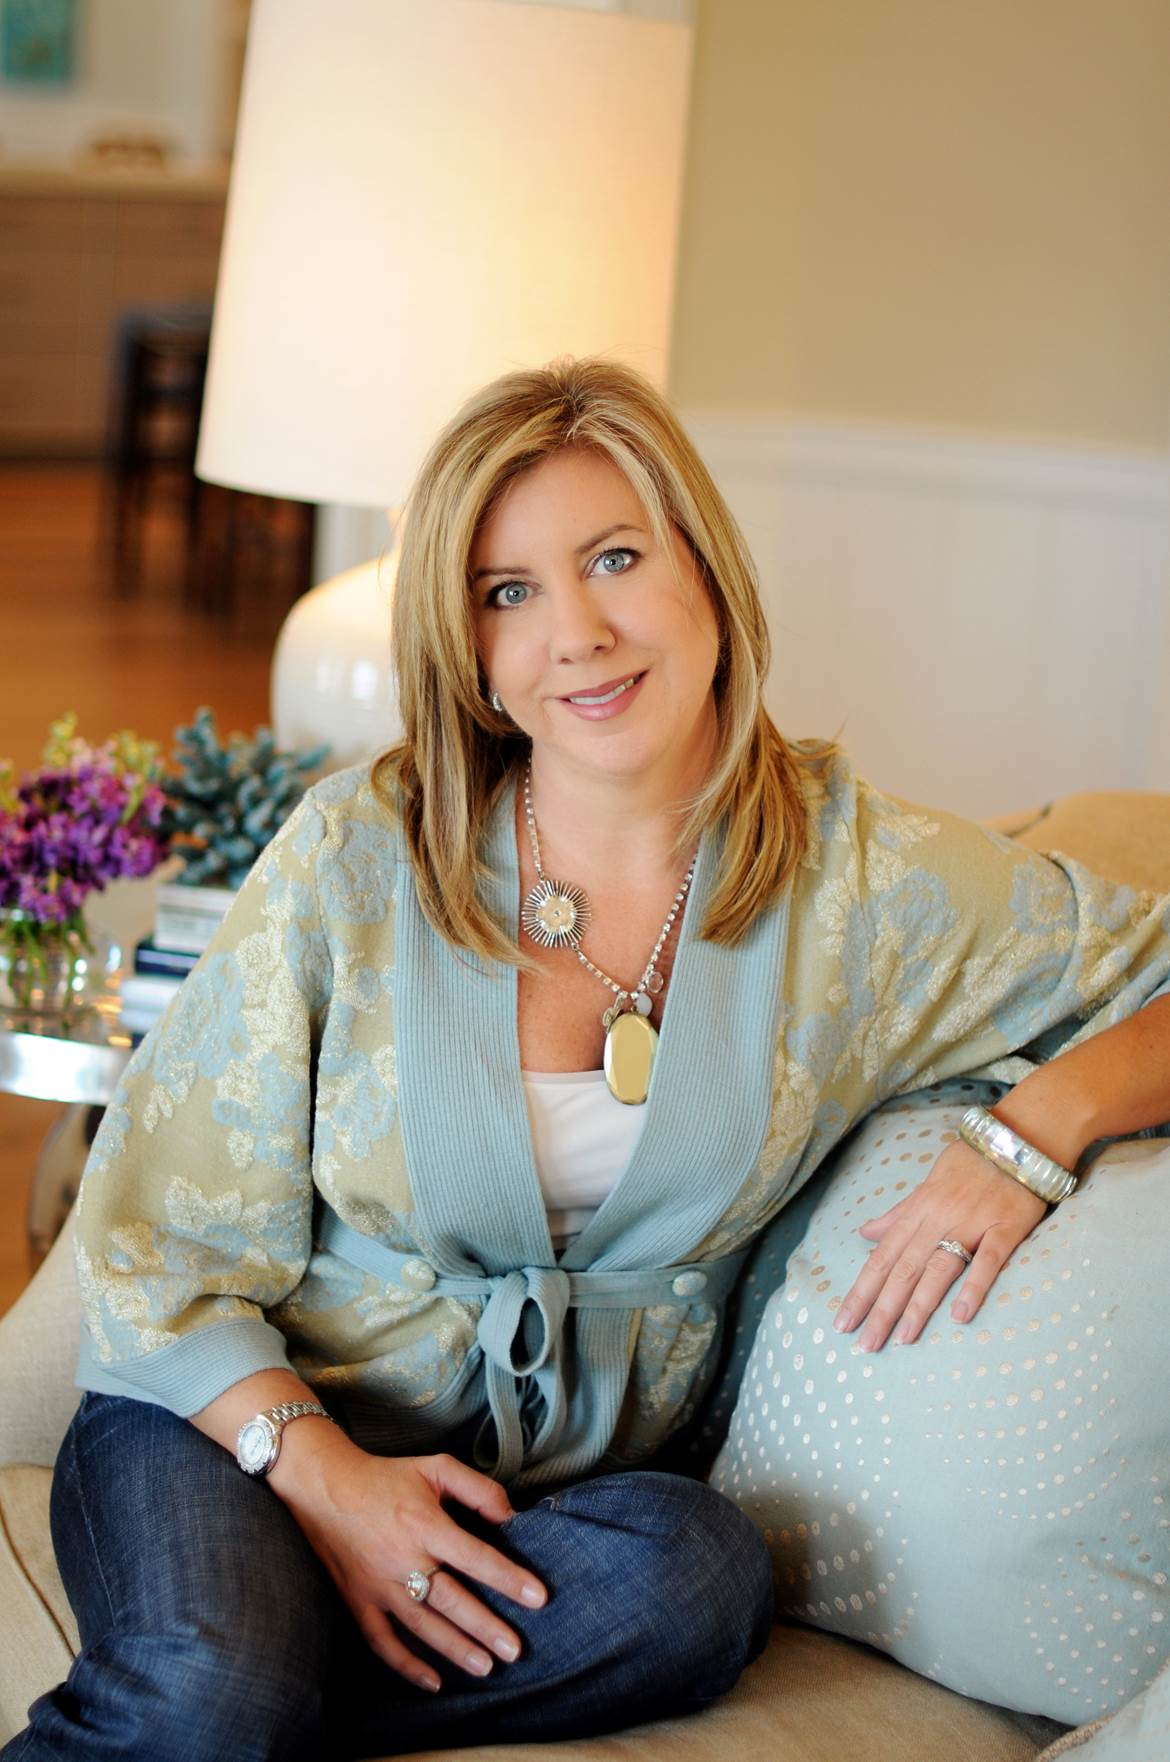 Michelle Jennings Wiebe of Studio M - High Point Market 2017 Style Spotters - Style Spotter Emeritus - Top interior designers in Florida - Luxury furniture trends 2017 high point market 2017 High Point Market 2017: What are the Style Spotters Most Excited for? b7e9ccabada0bb741a14ac6a5787535d